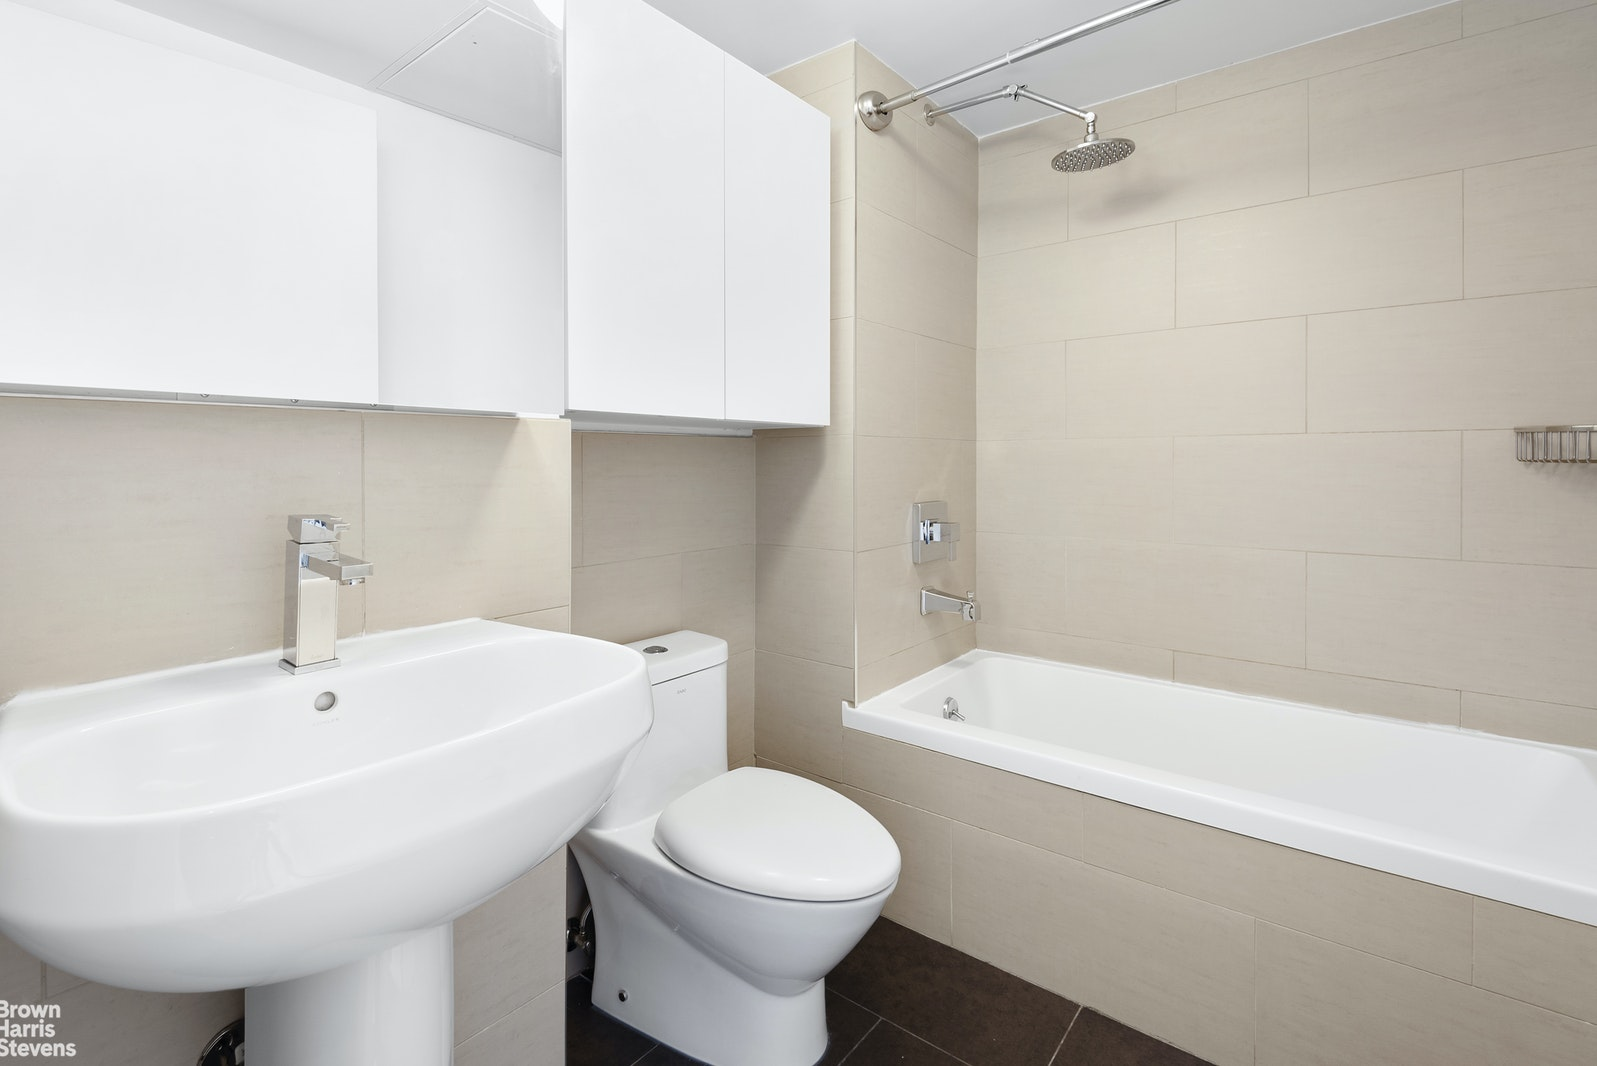 186 Putnam Avenue 5c, Bedford Stuyvesant, Brooklyn, NY, 11216, $798,000, Property For Sale, Halstead Real Estate, Photo 5